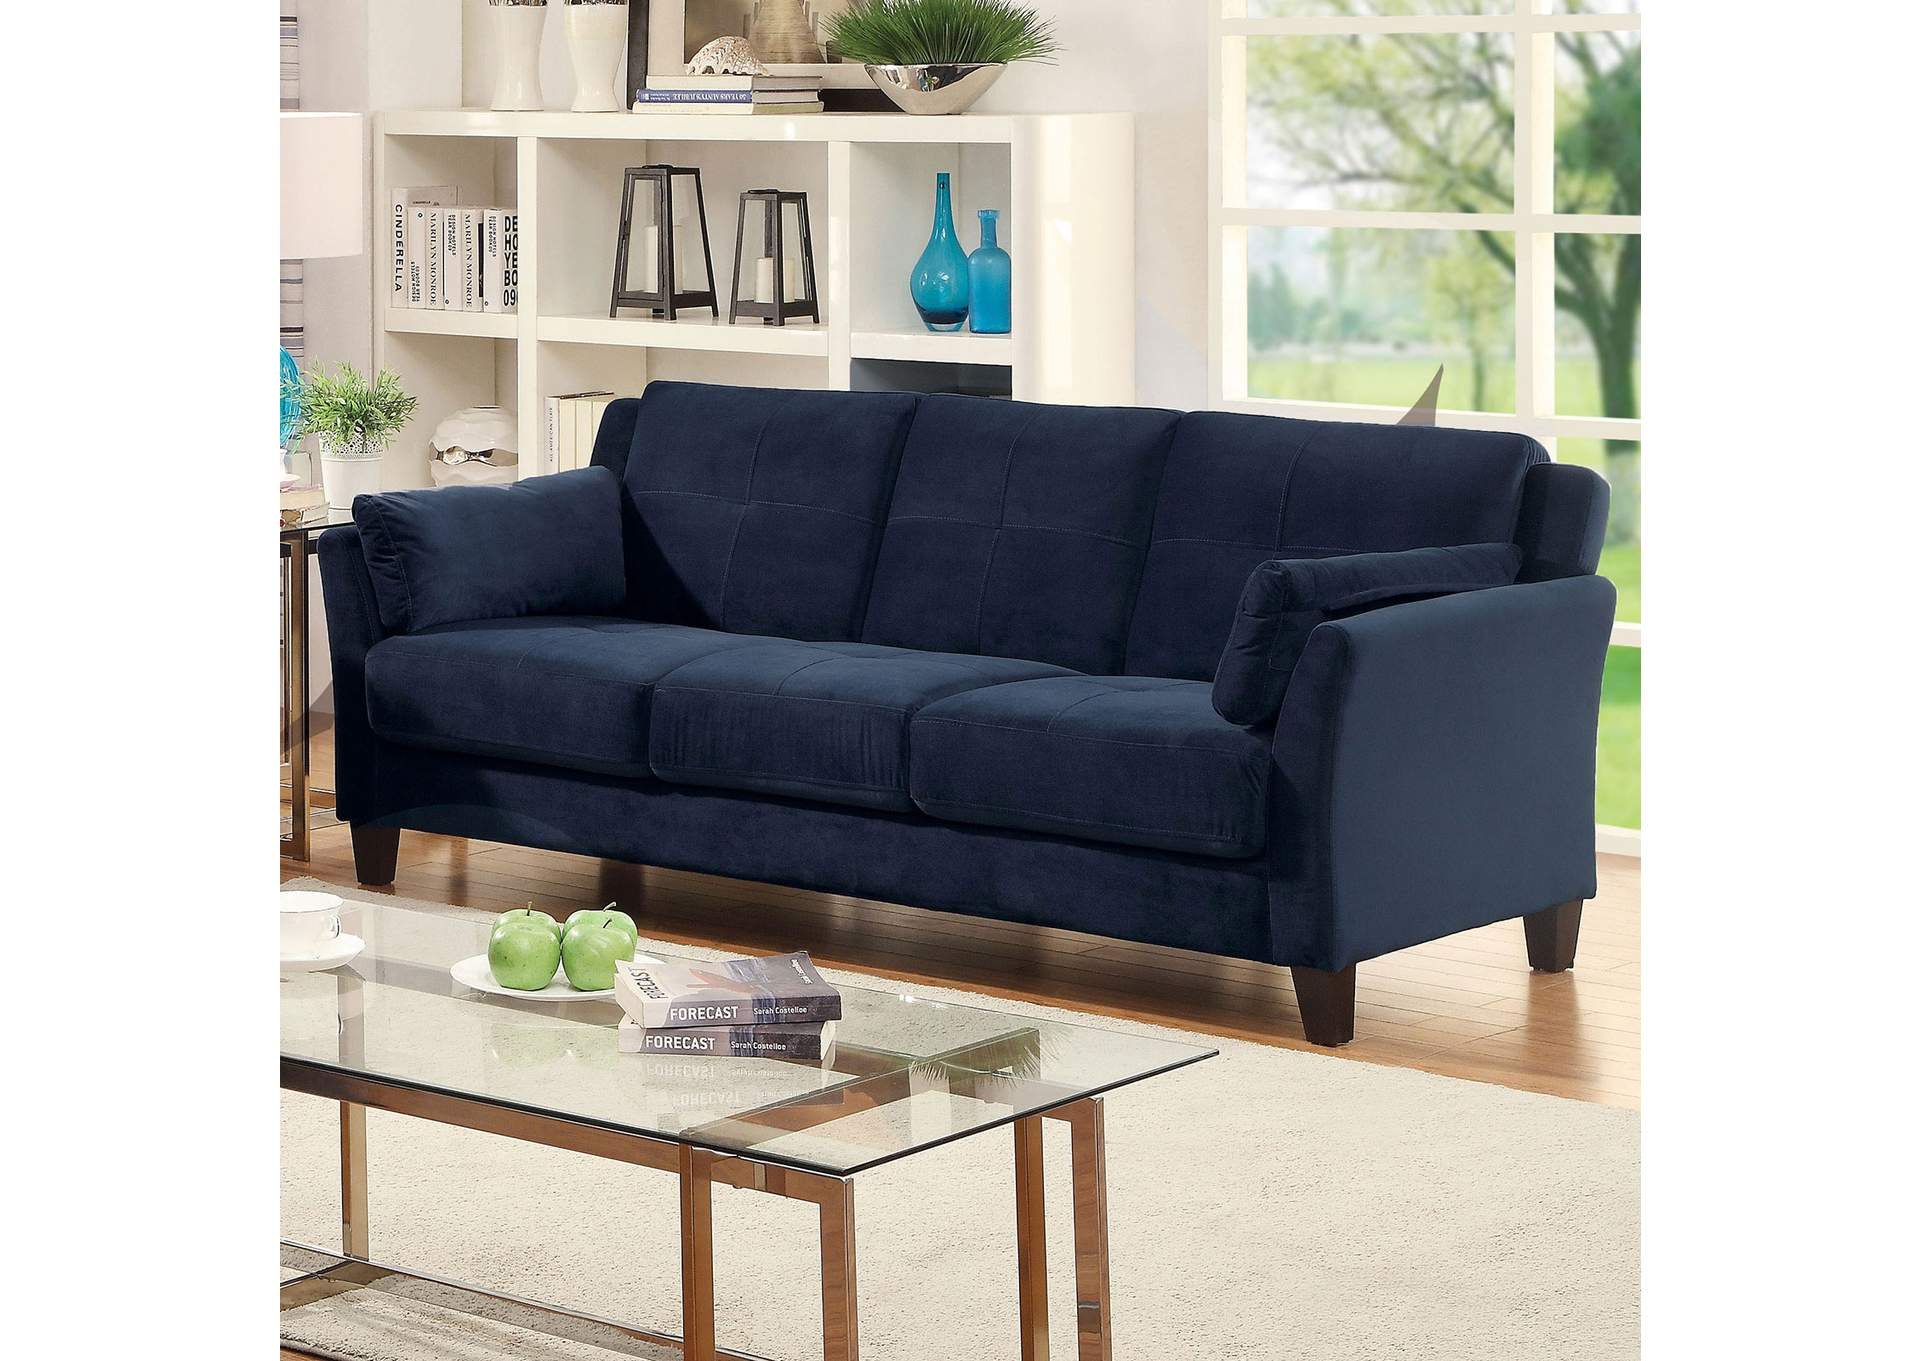 Add Charm Living Room Sets Ysabel Navy Sofa,Furniture of America